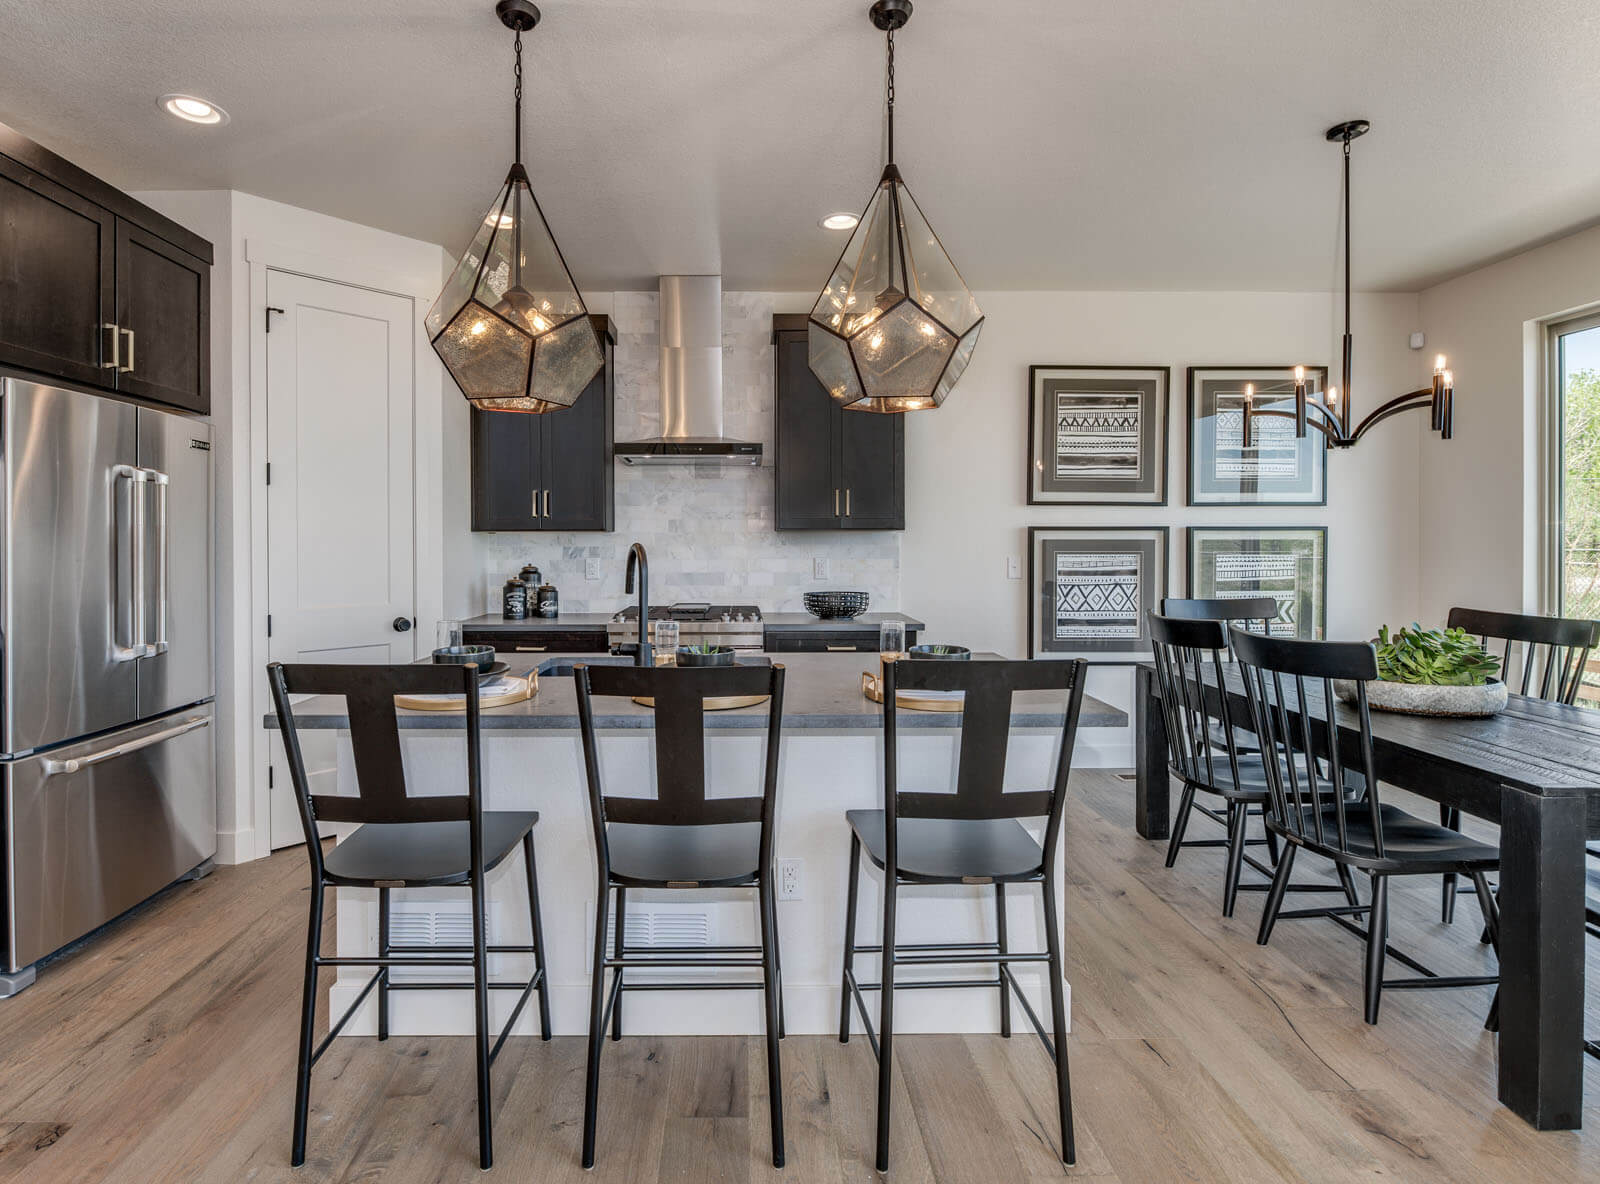 New Denver  Model Home Tiago in Westminster Station, located at 6920 Canosa St, Denver Built By Cardel Homes Denver